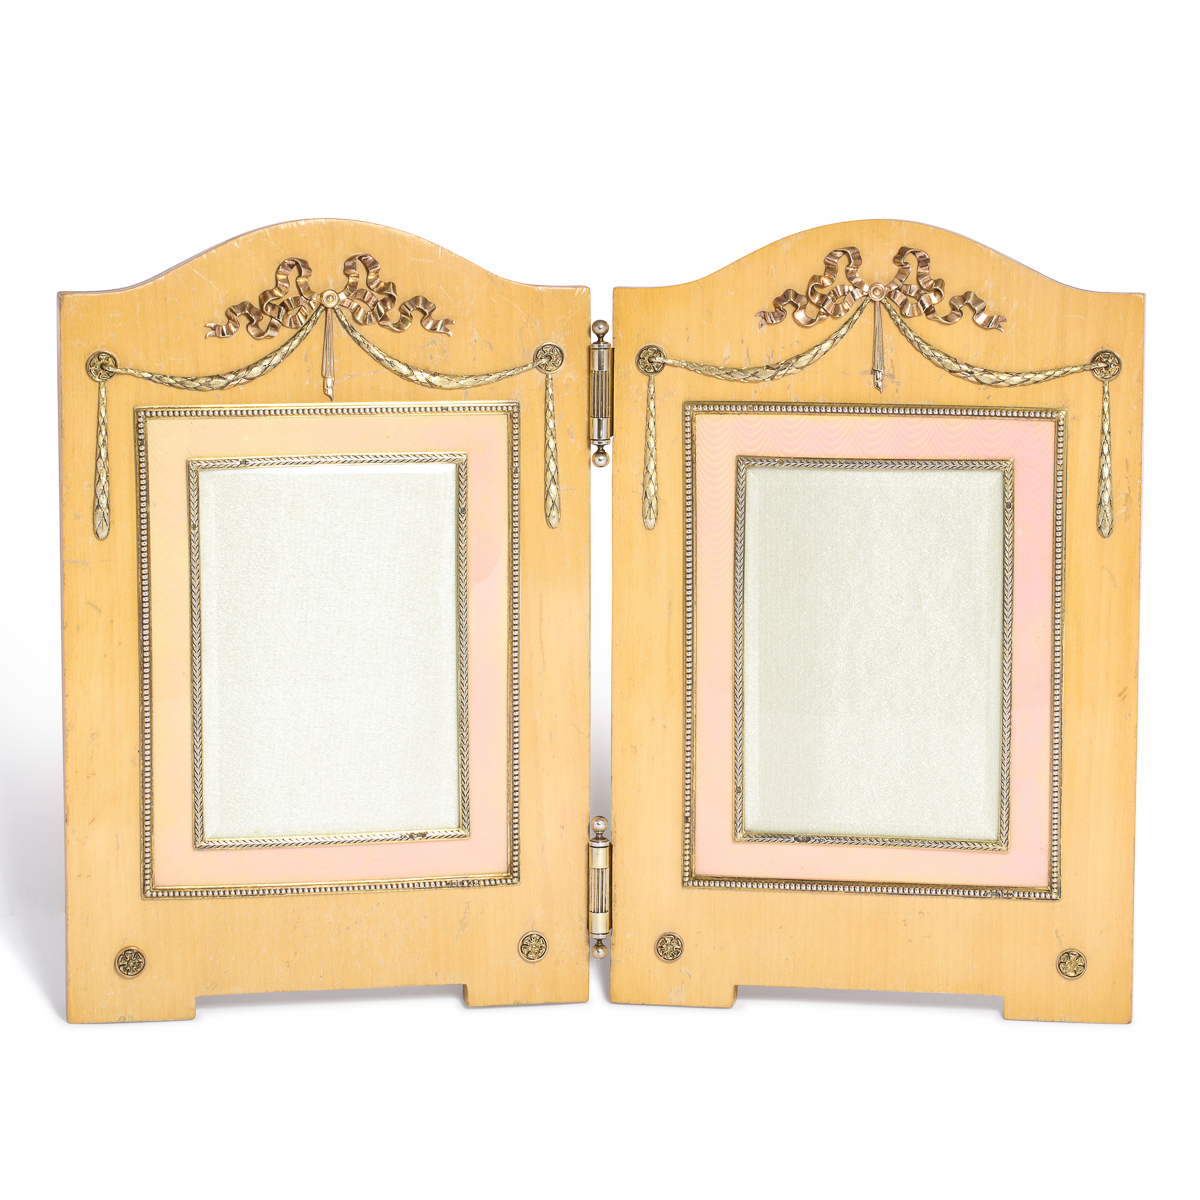 main view, Fabergé Enamel and Holly Wood Double Frame